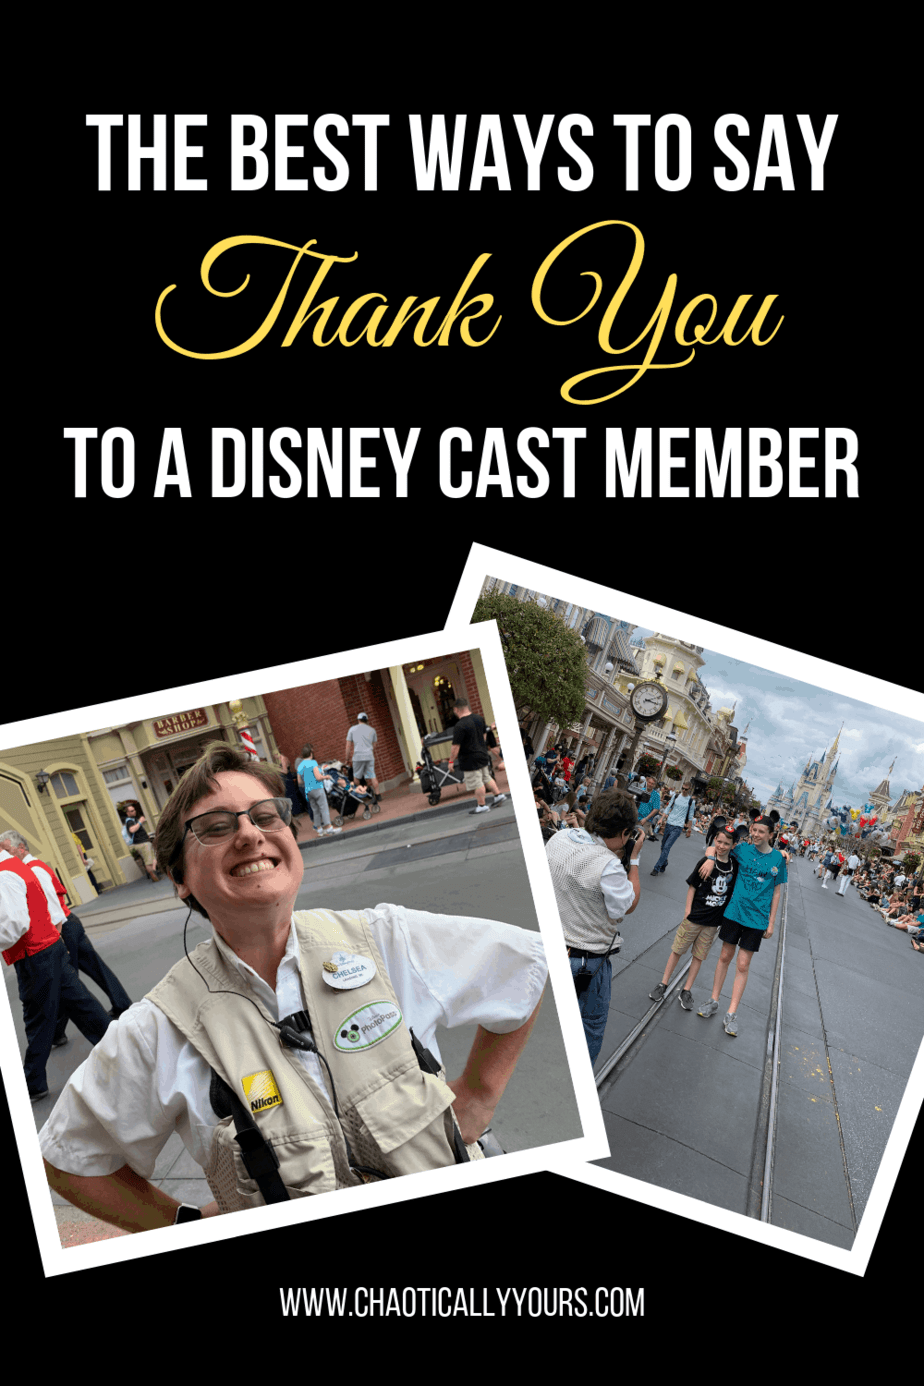 Three Awesome Ways To Thank A Disney Cast Member - Chaotically Yours